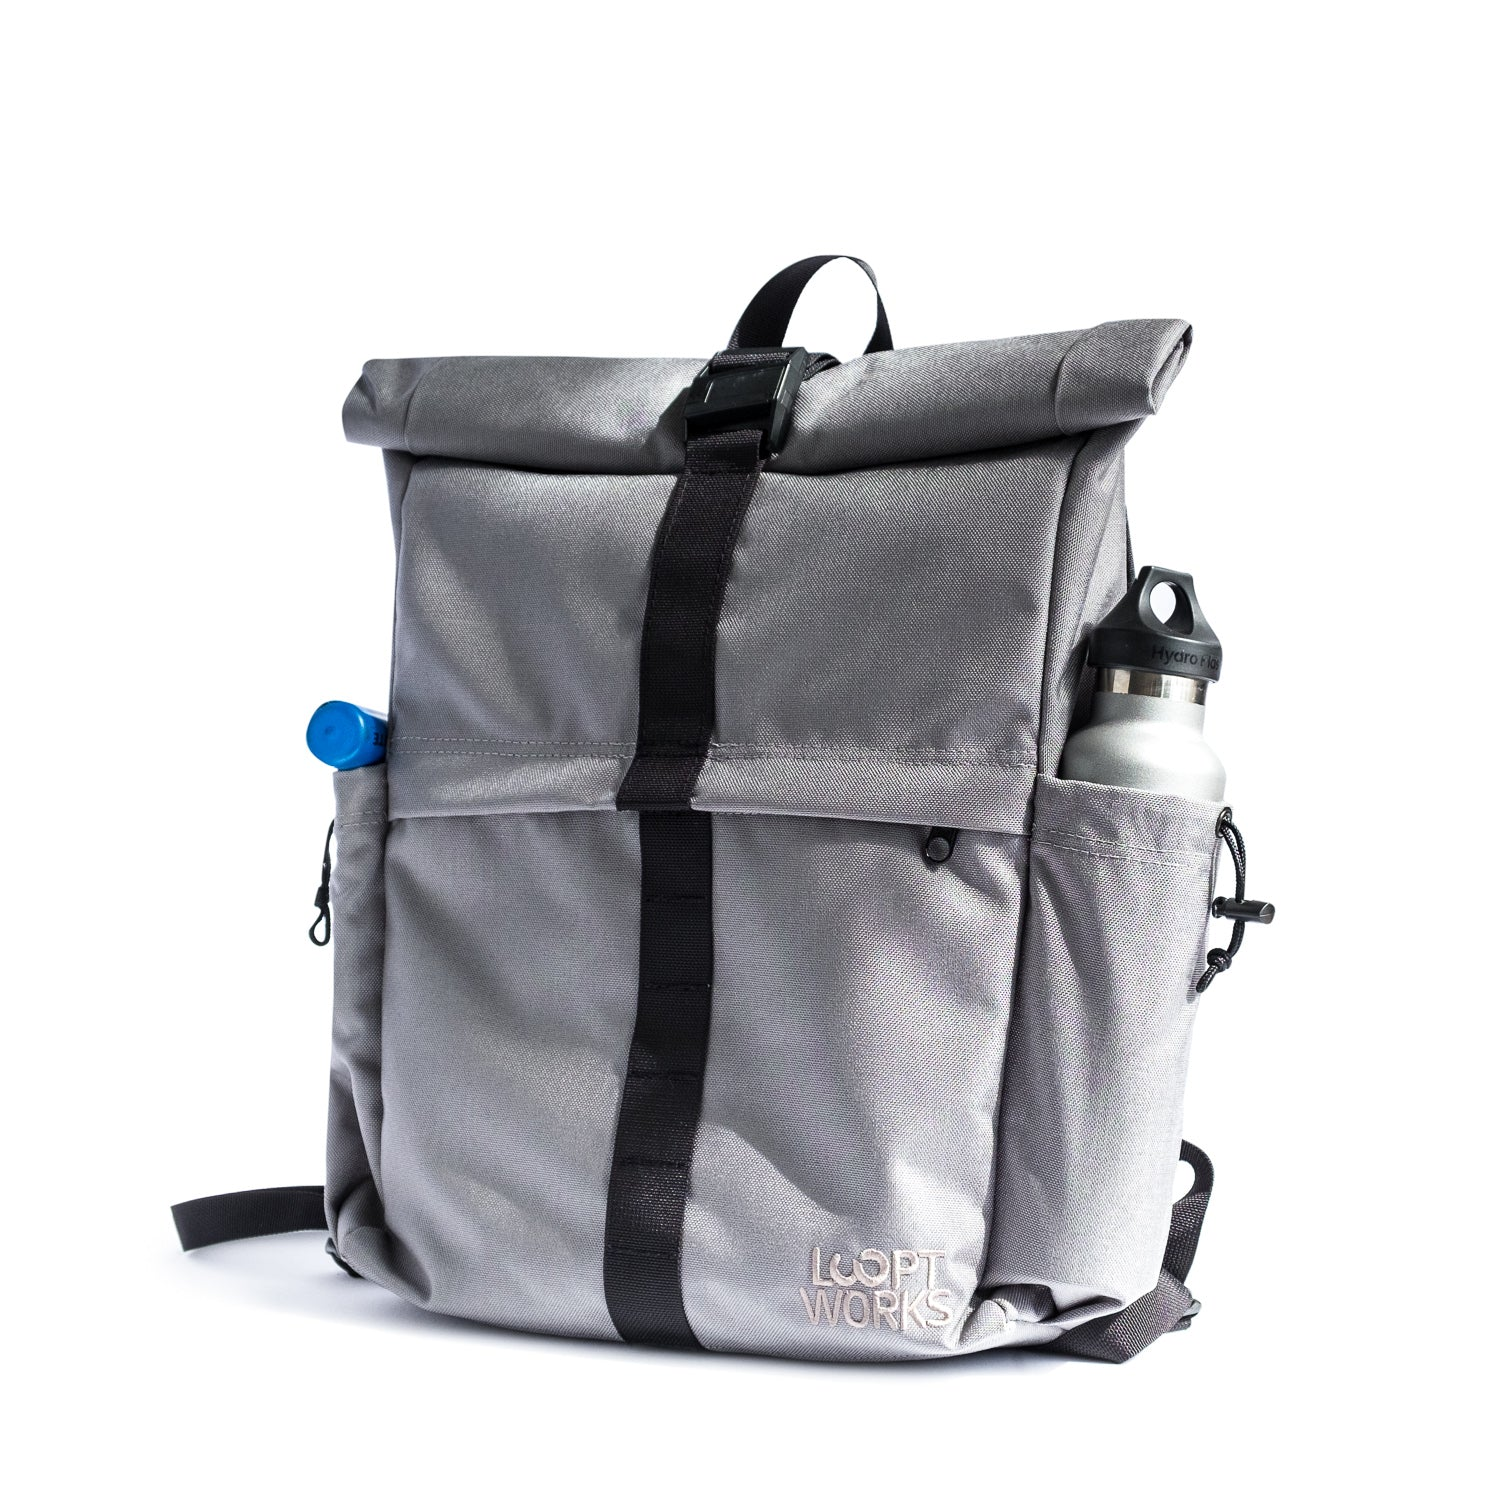 Water Resistant Roll Top Backpack- Fenix Toulouse Handball bd80c7bd41123